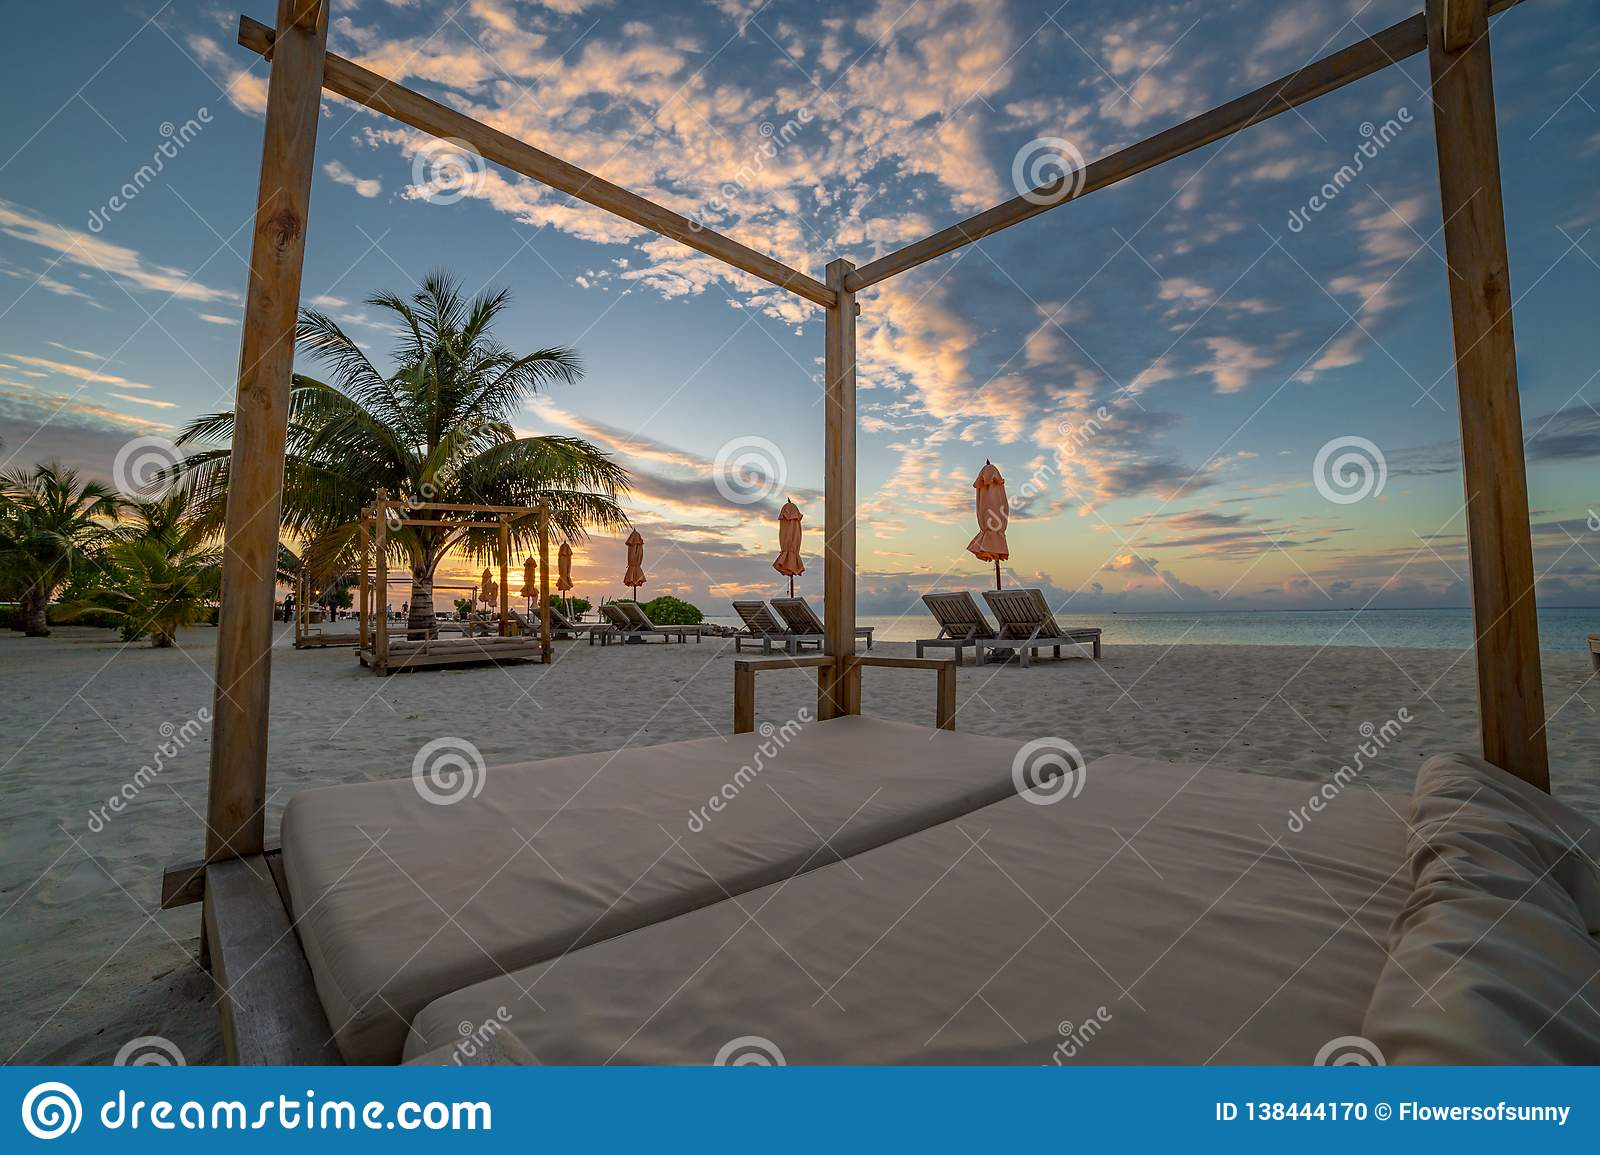 Beach canopy and sunset or sunrise colors on the sky and clouds. Amazing summer vacation moods on beach landscape